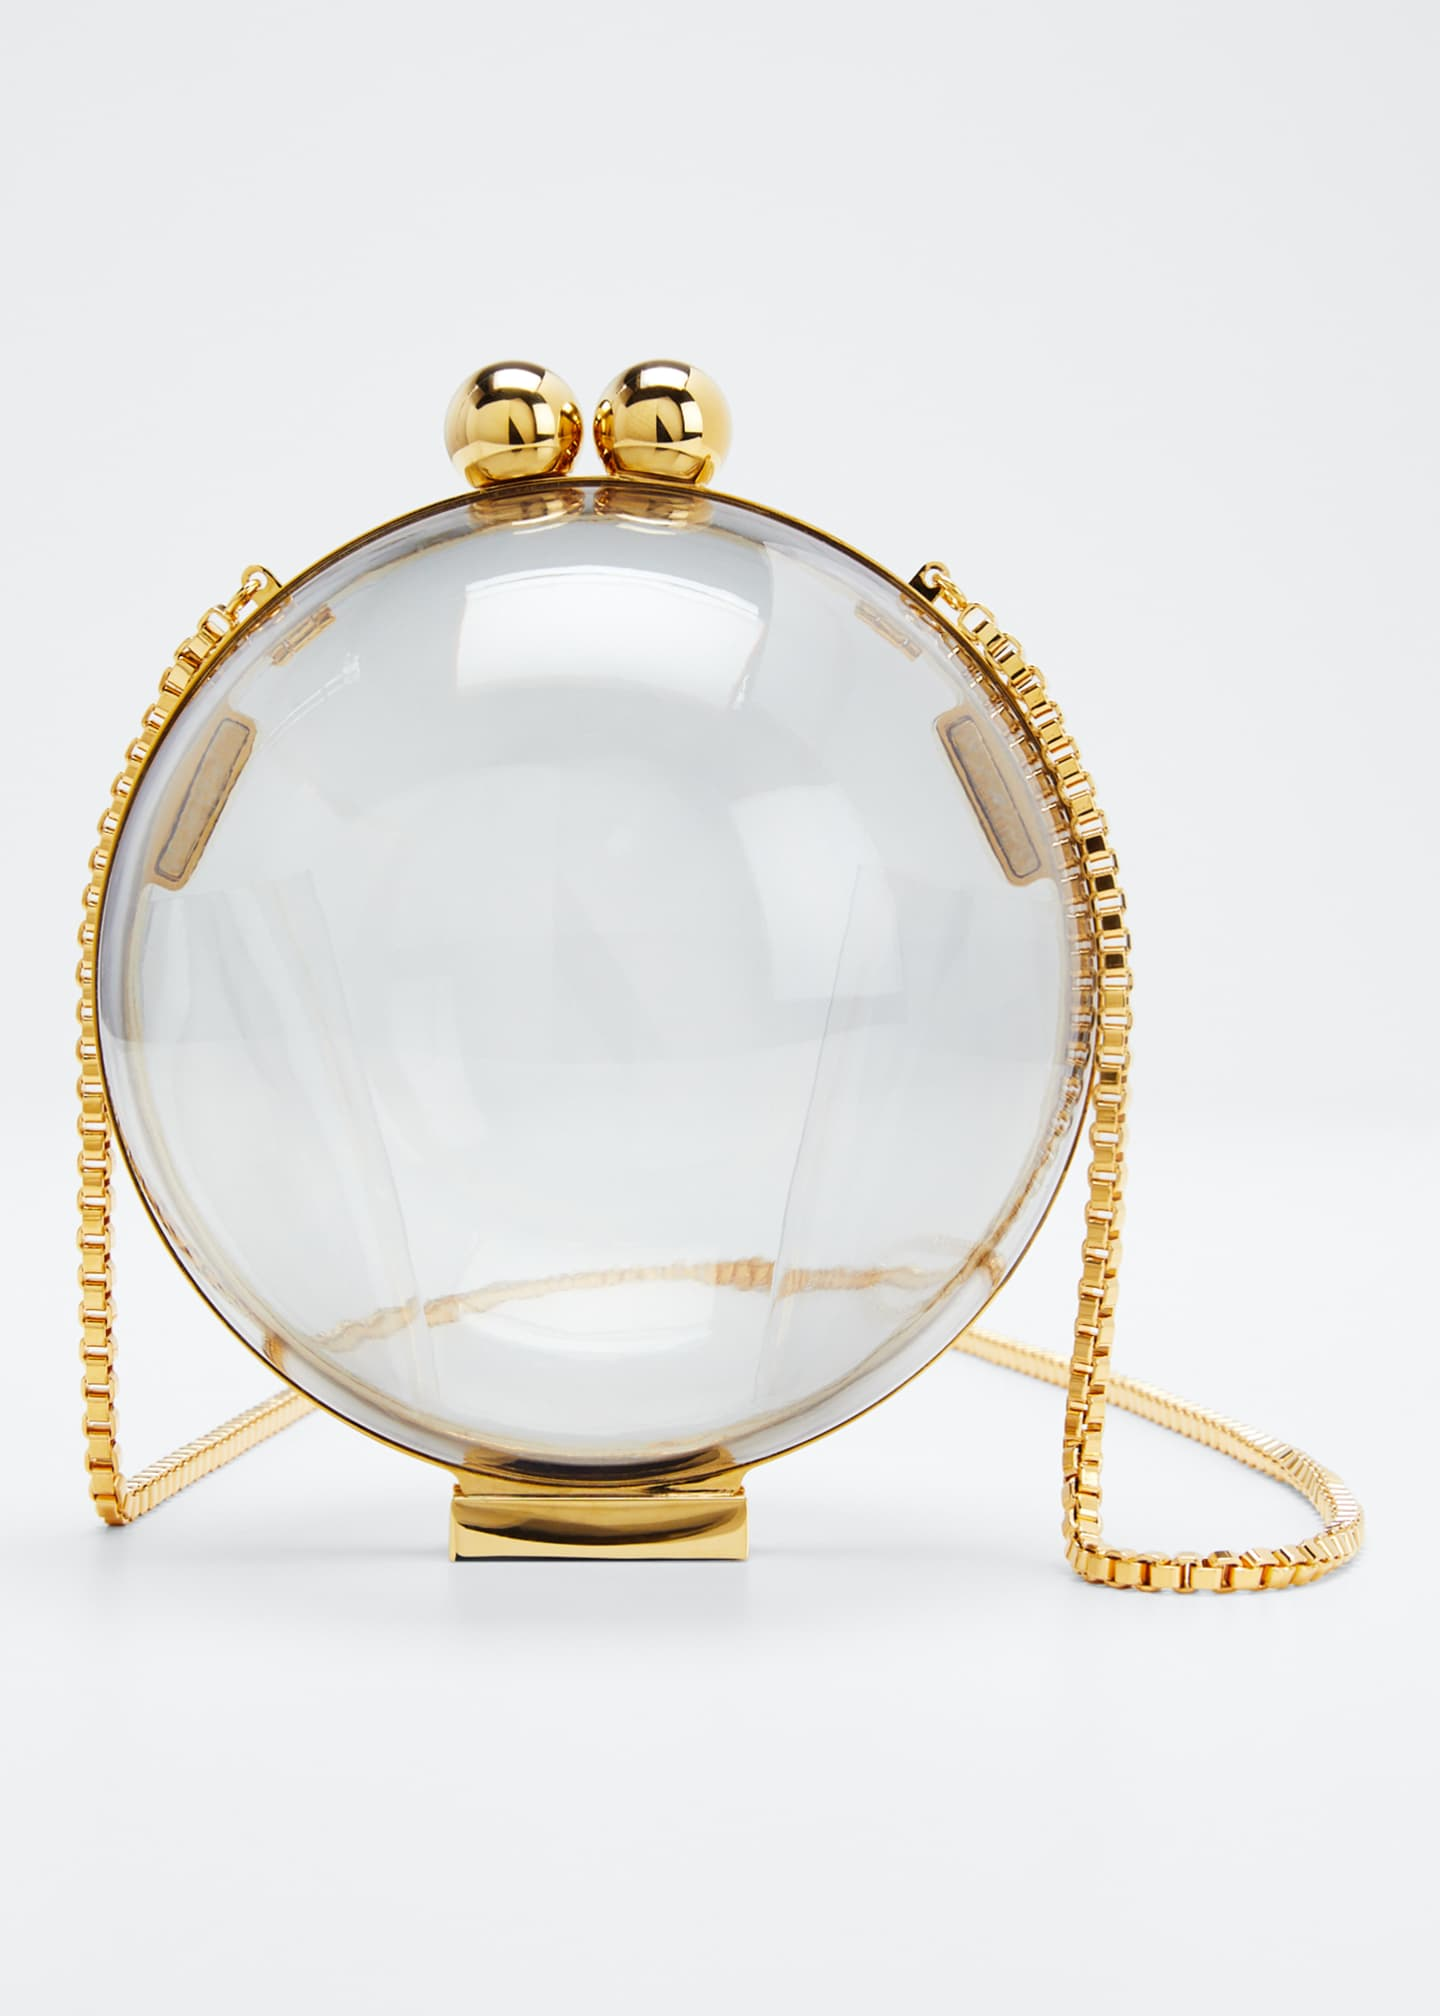 Marzook Lucid Classic Orb Minaudiere Clutch Bag